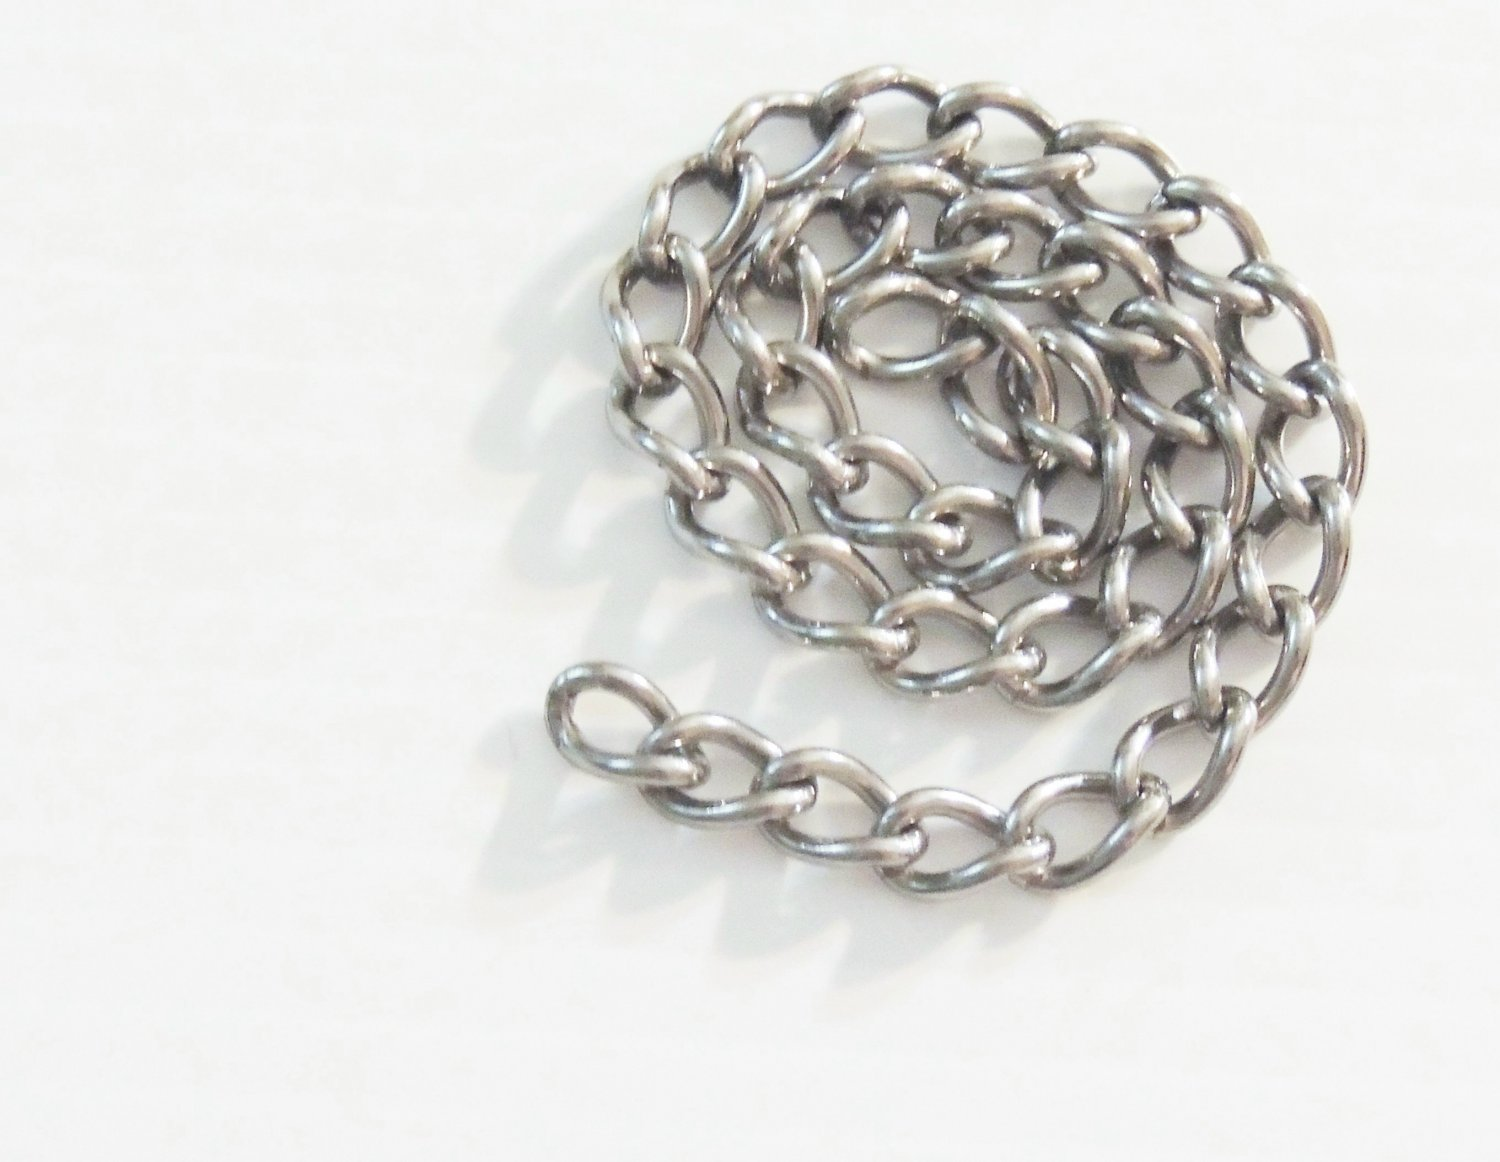 1' 2.0 Stainless Steel Chain bird toy parts parrots cages